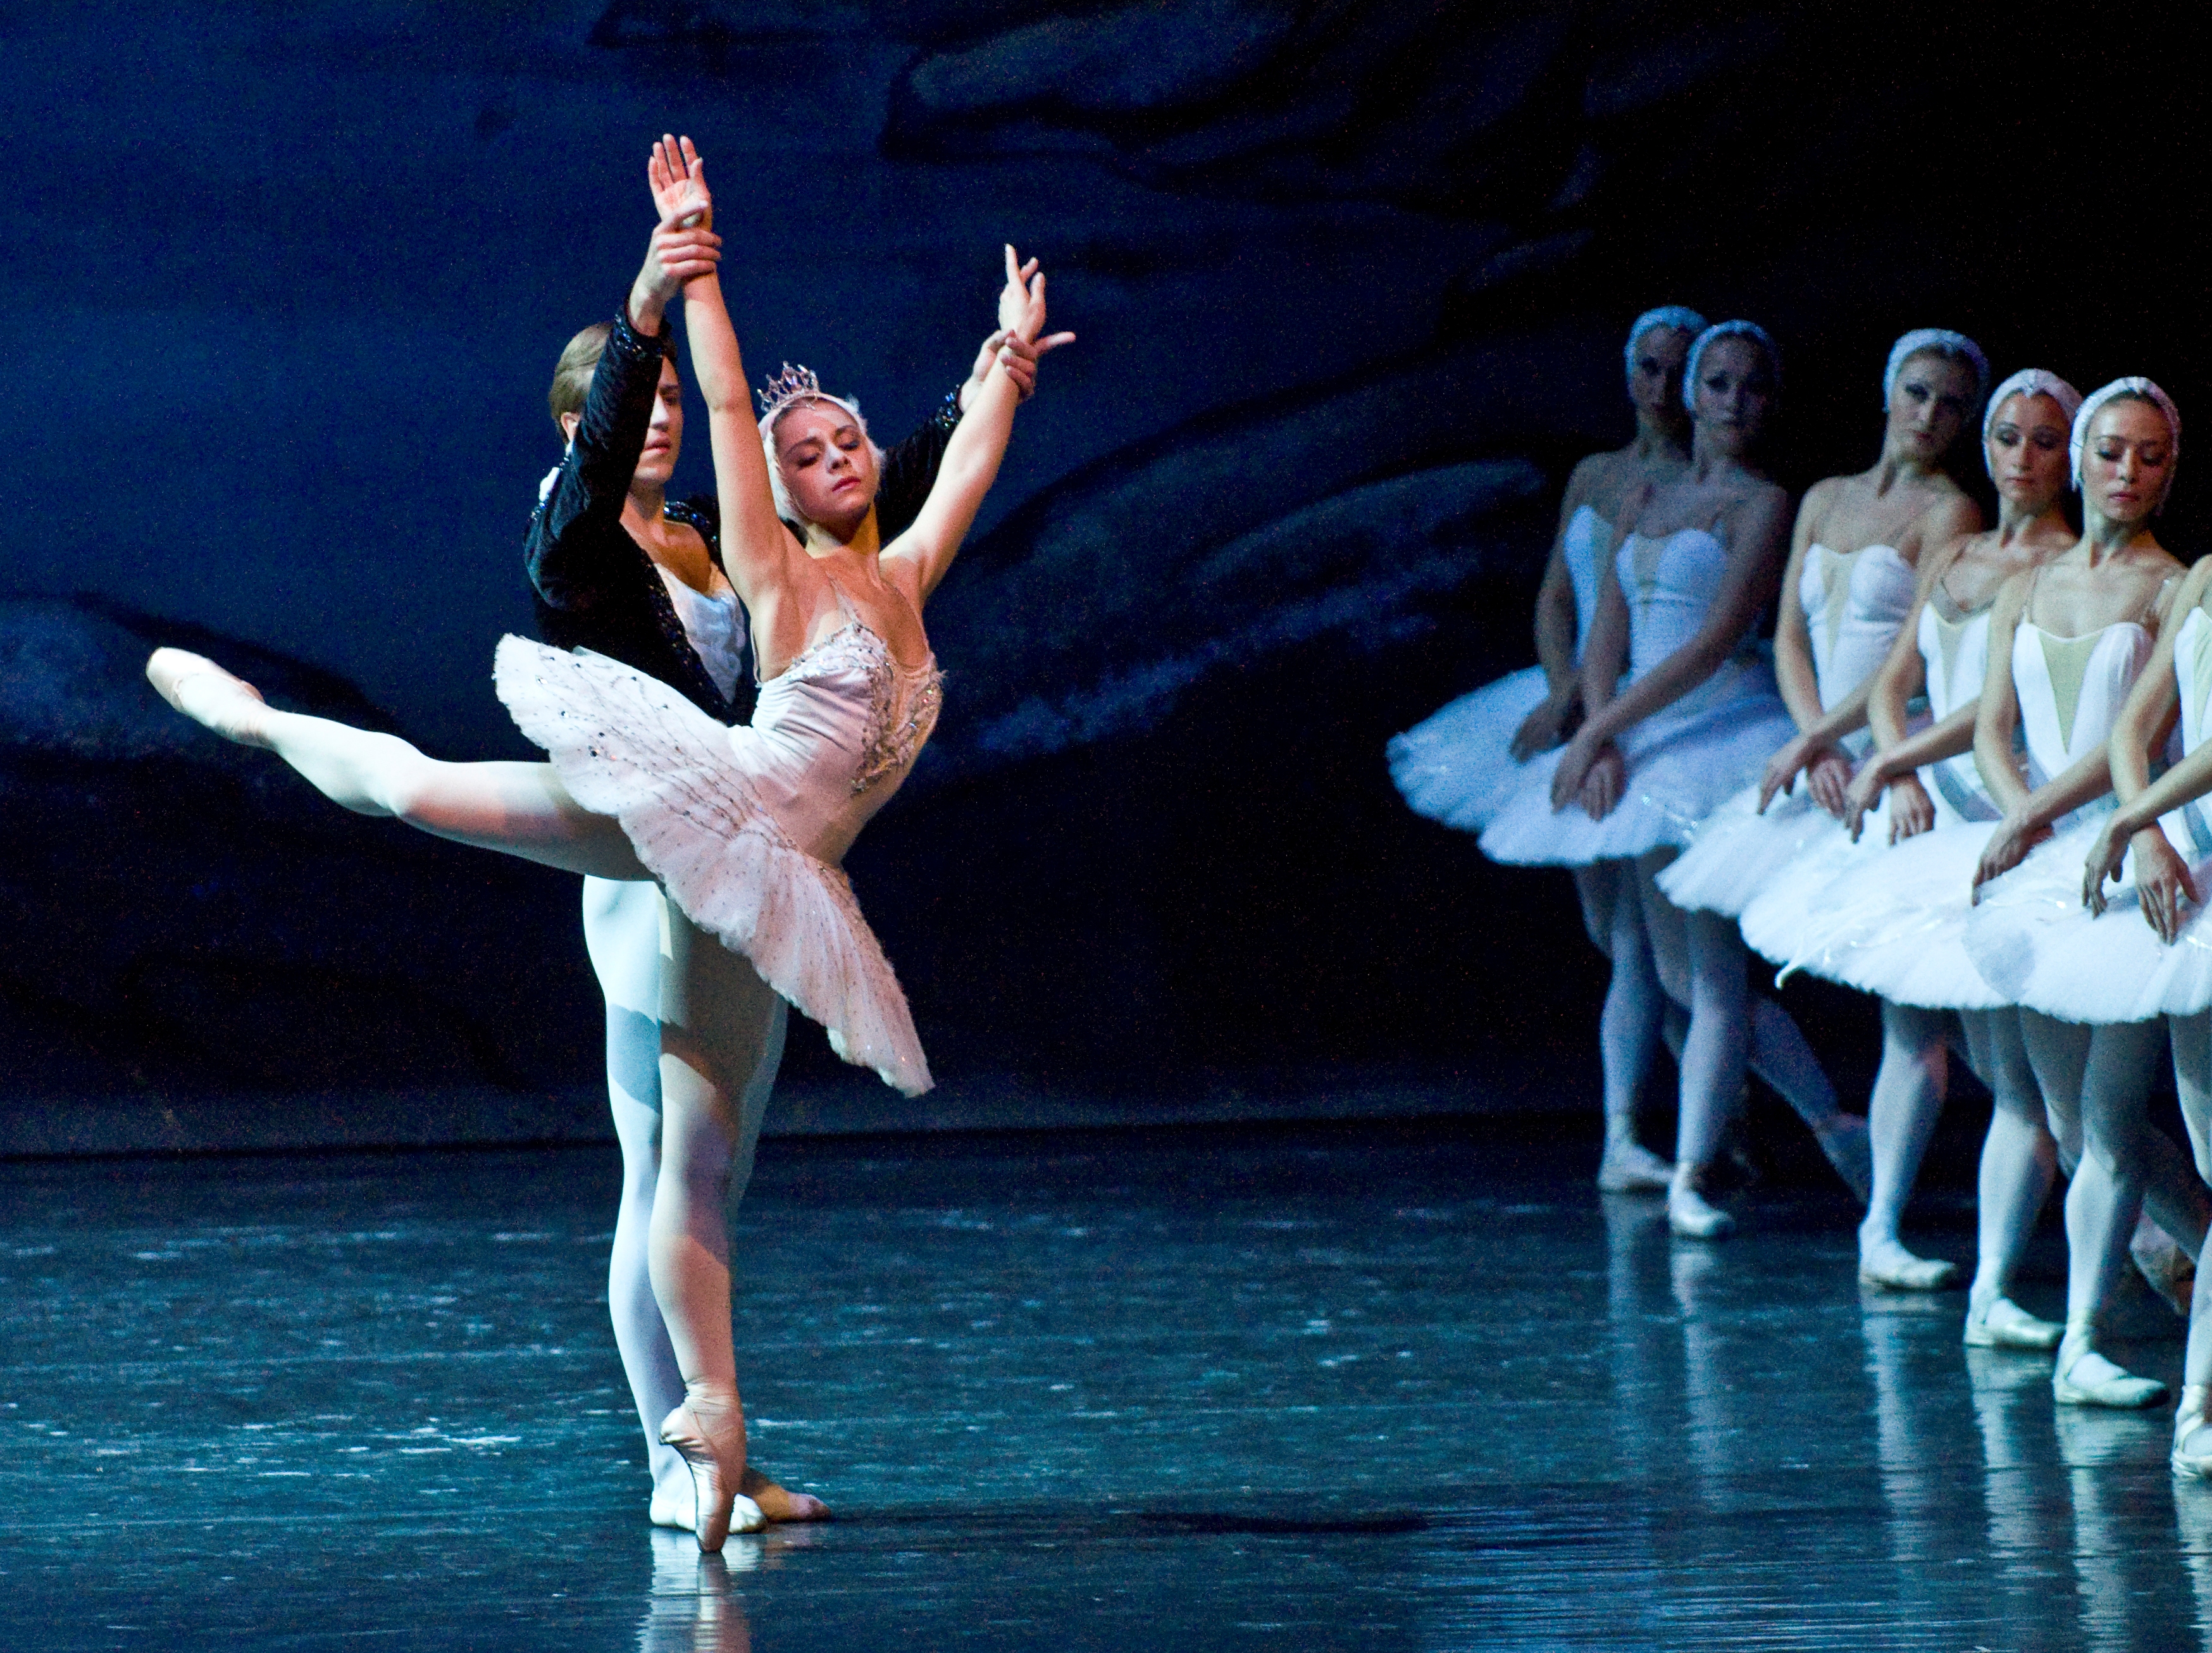 Swan Lake's Siegfried, Odette and Swans